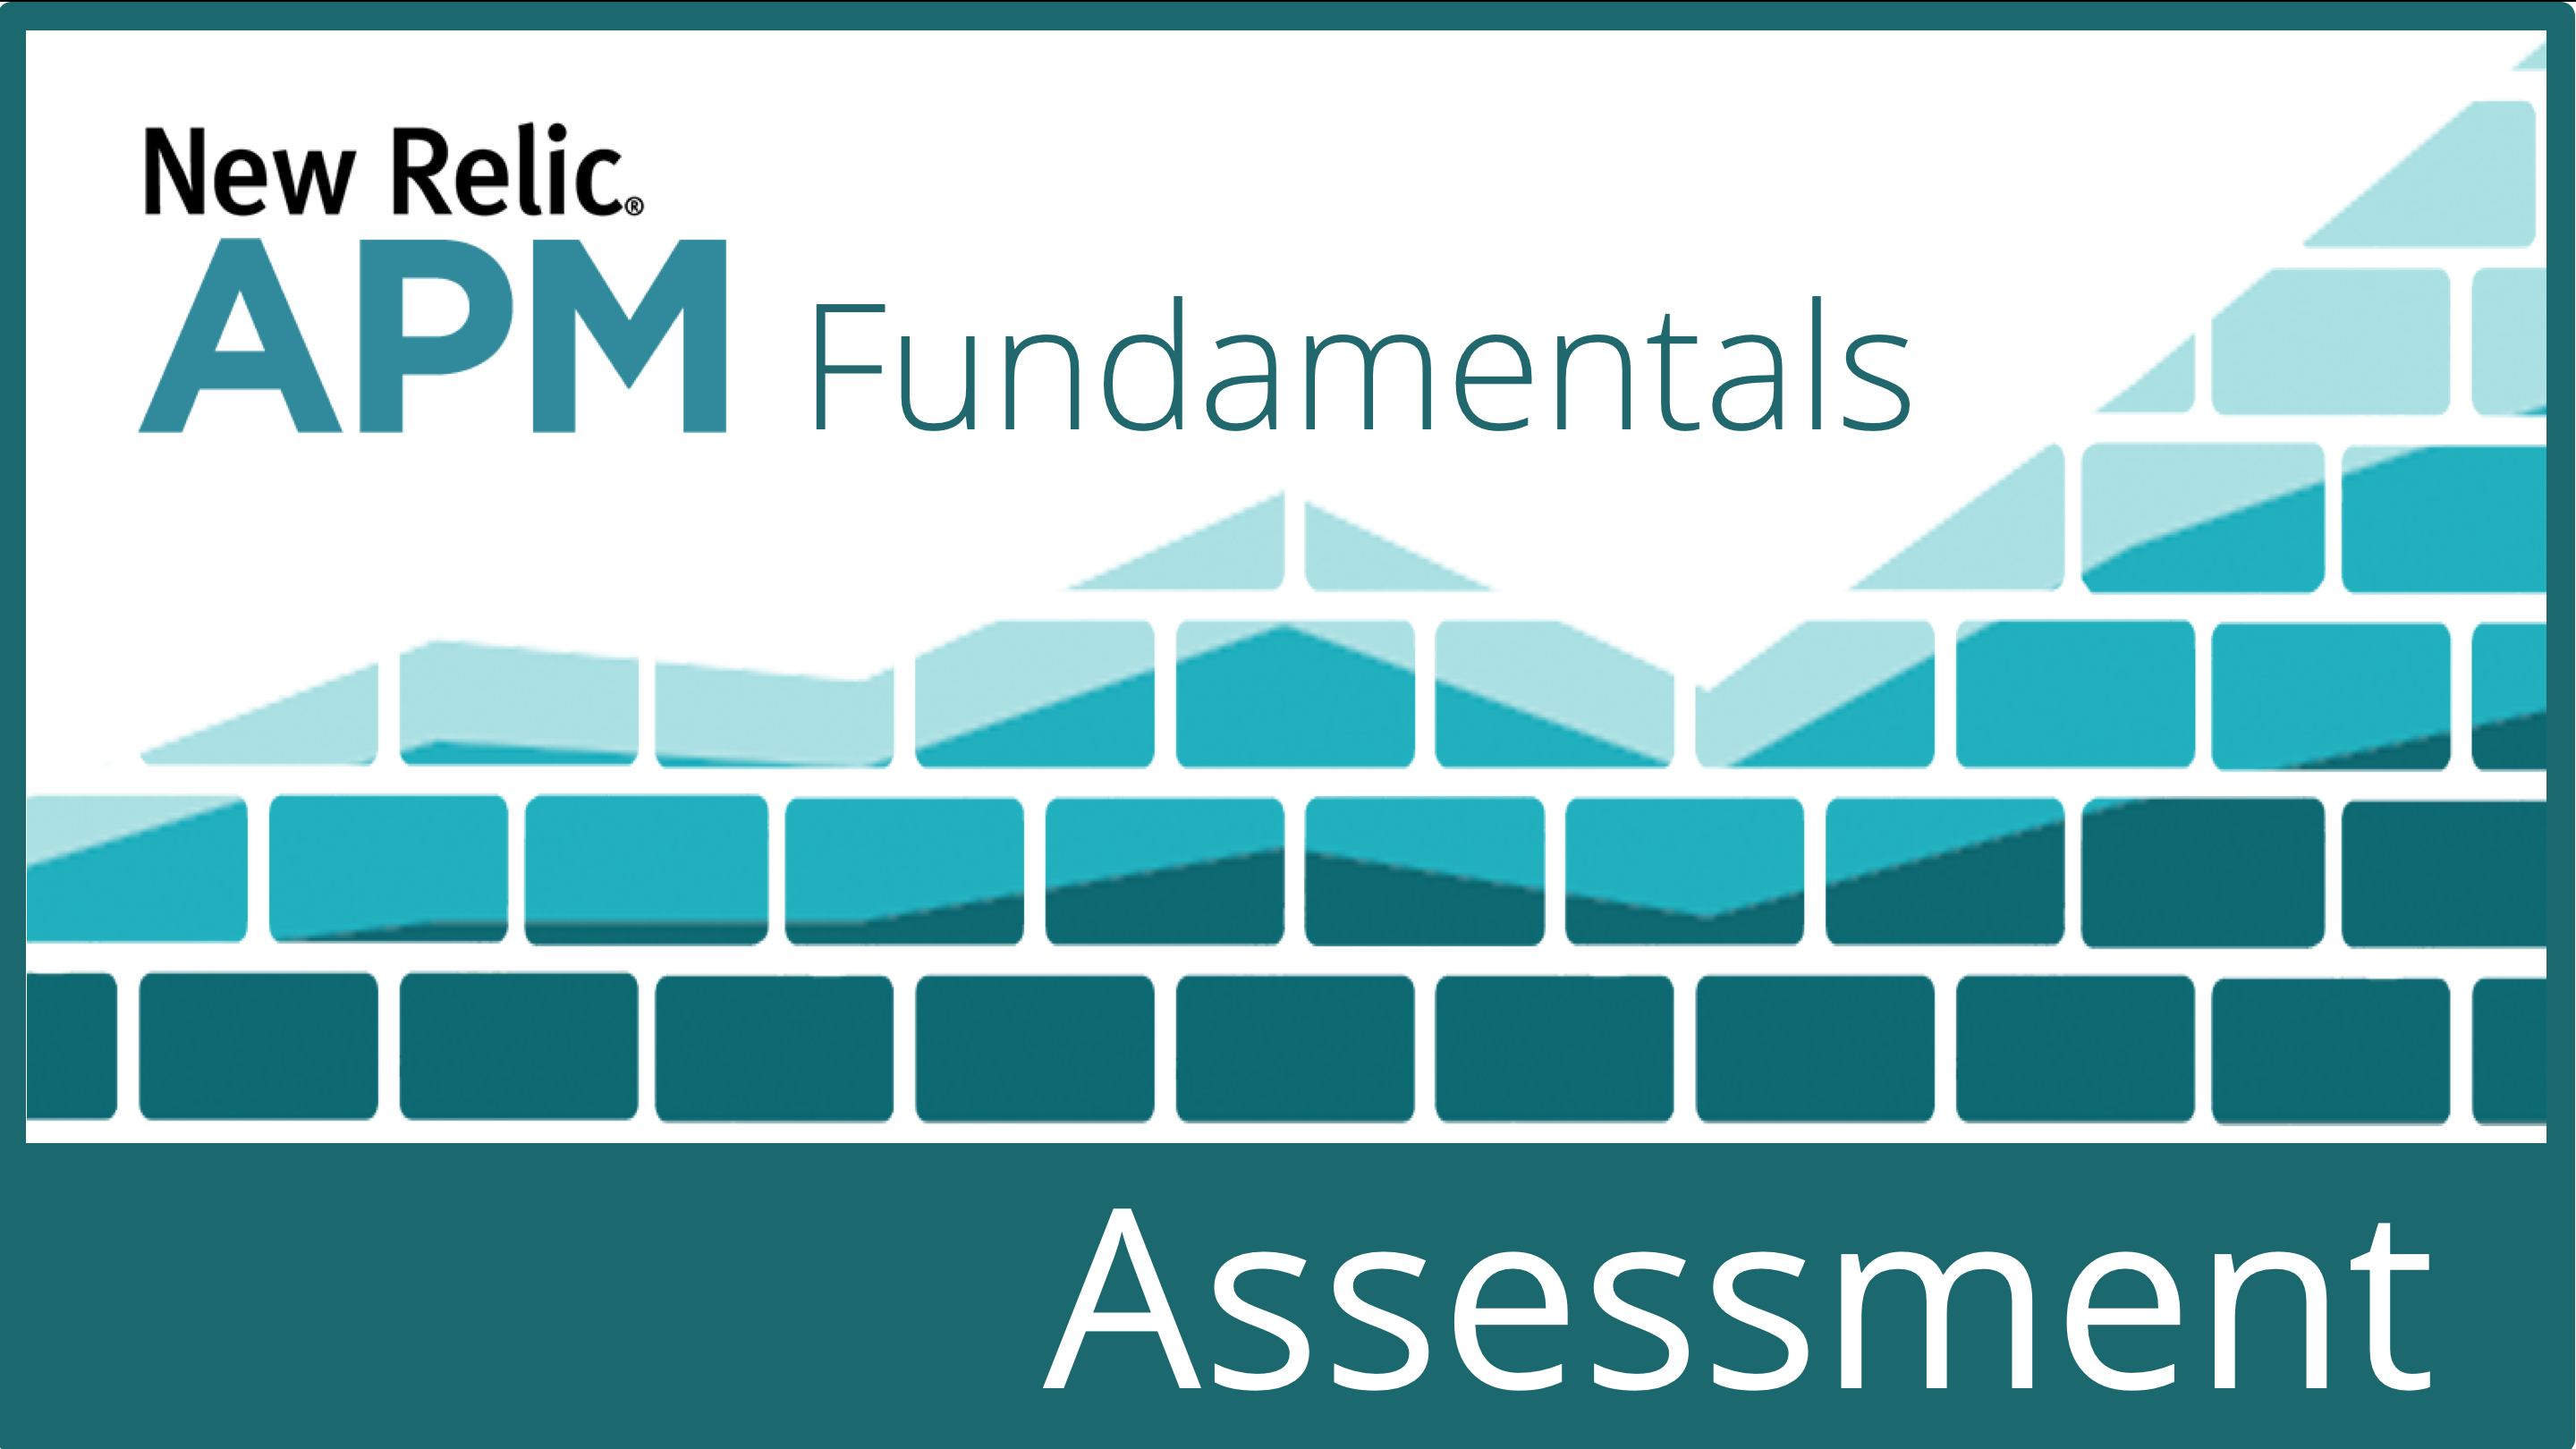 ILT Certification Assessment: New Relic APM Fundamentals